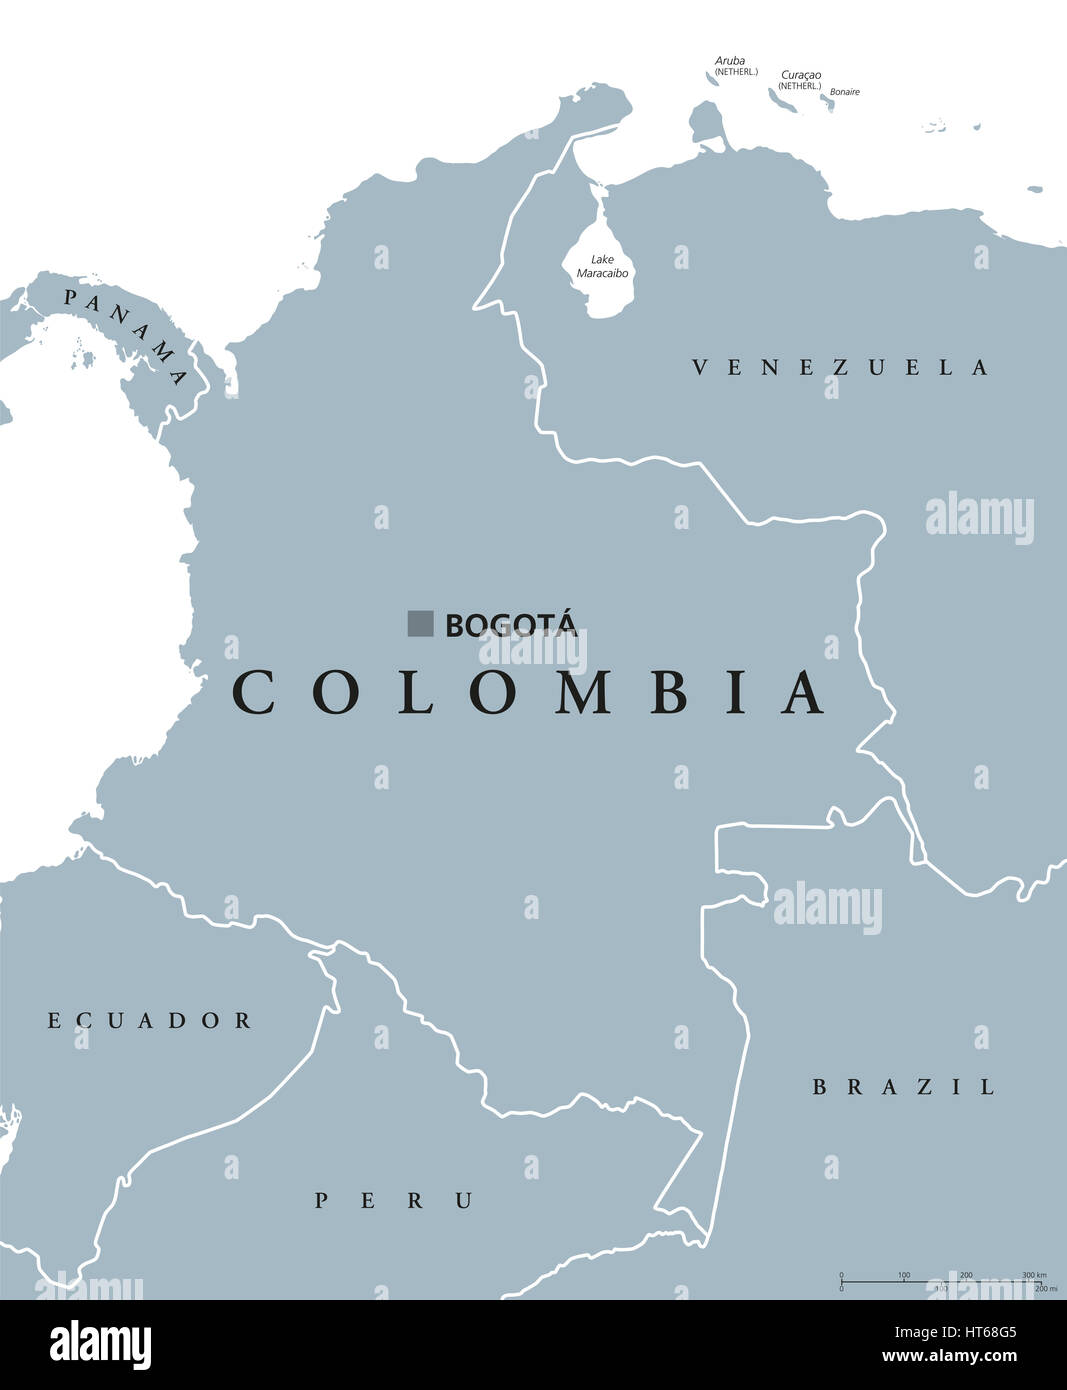 Colombia political map with capital Bogota national borders and